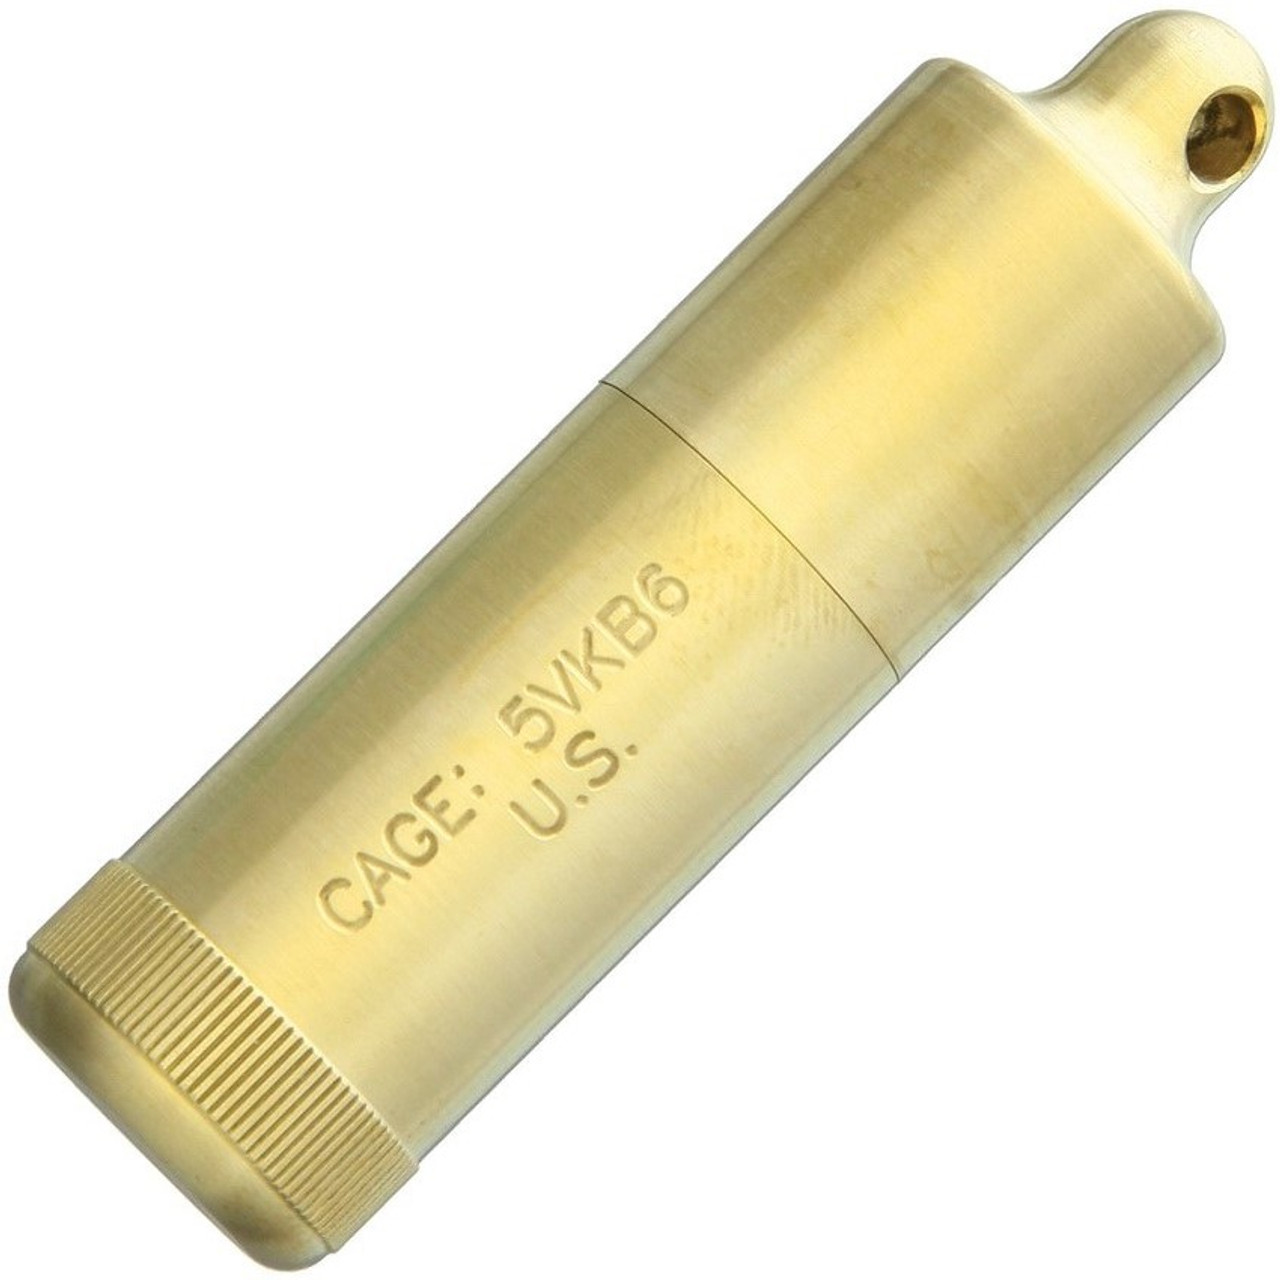 Maratac Peanut XL Brass Lighter